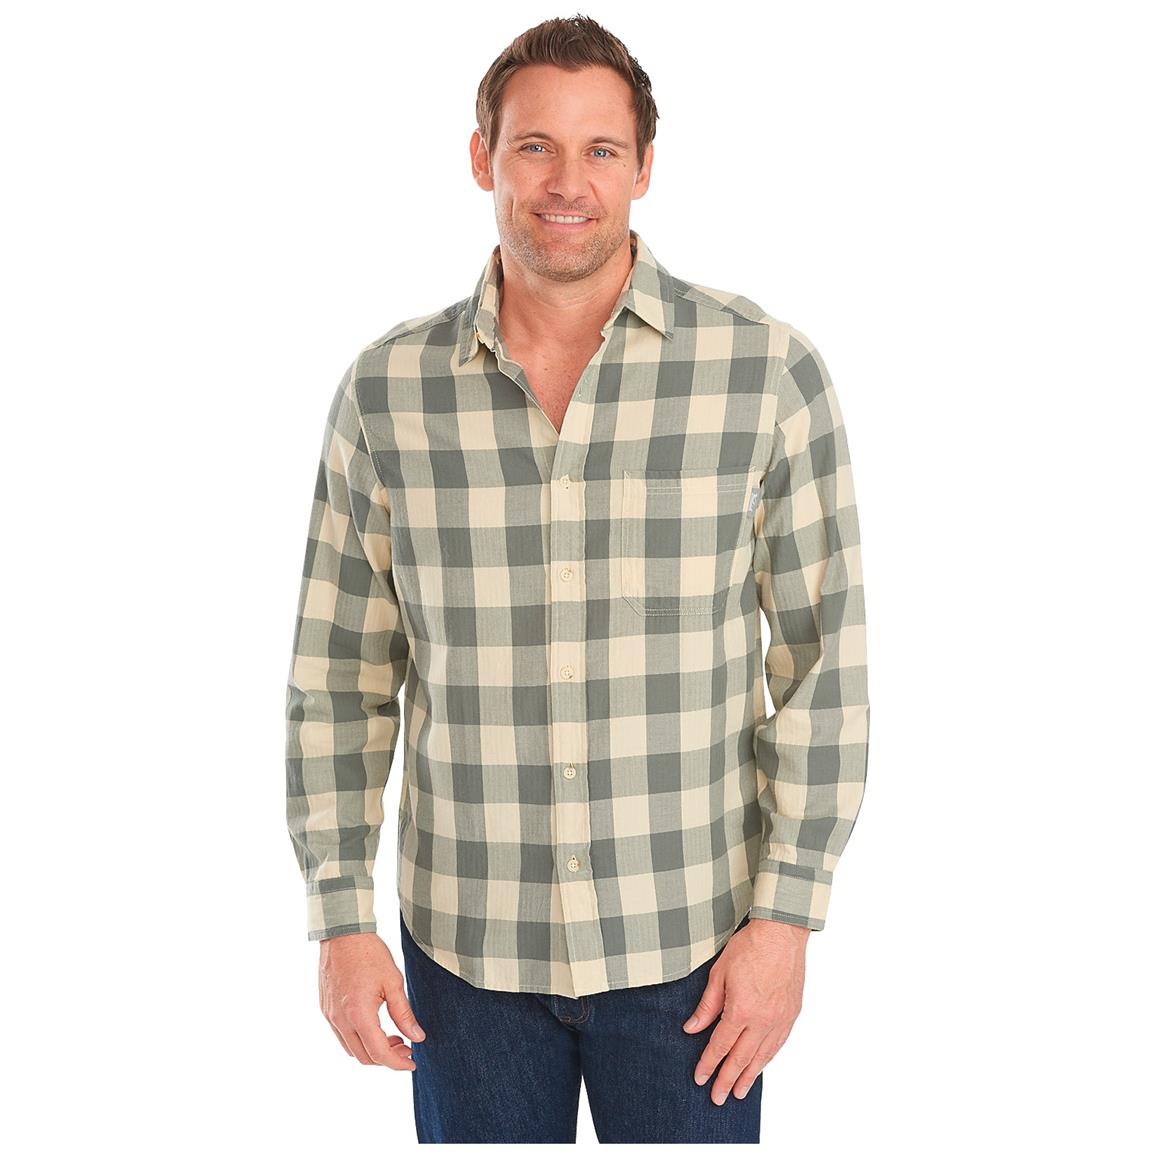 Woolrich Men's Cedar Springs Plaid Long Sleeve Shirt, Field Gray